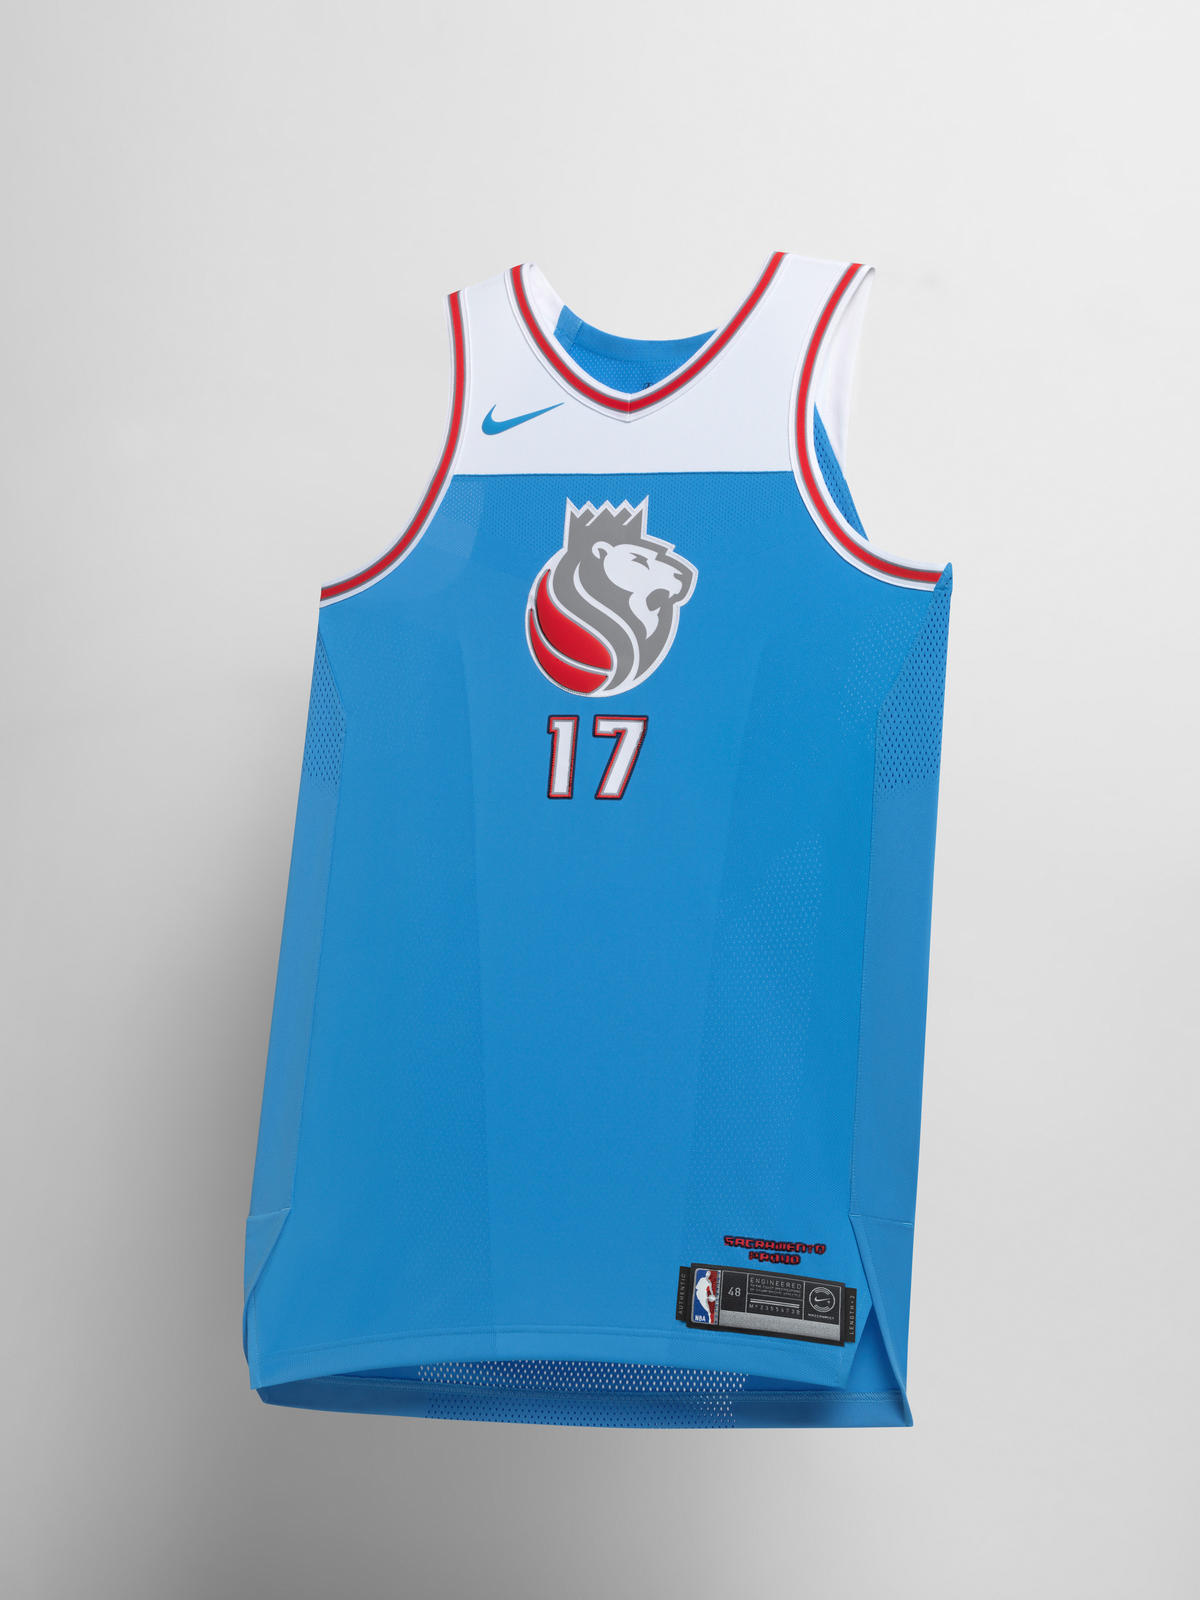 online store b5c4d 93d8f Nike NBA City Edition Uniform - Nike News